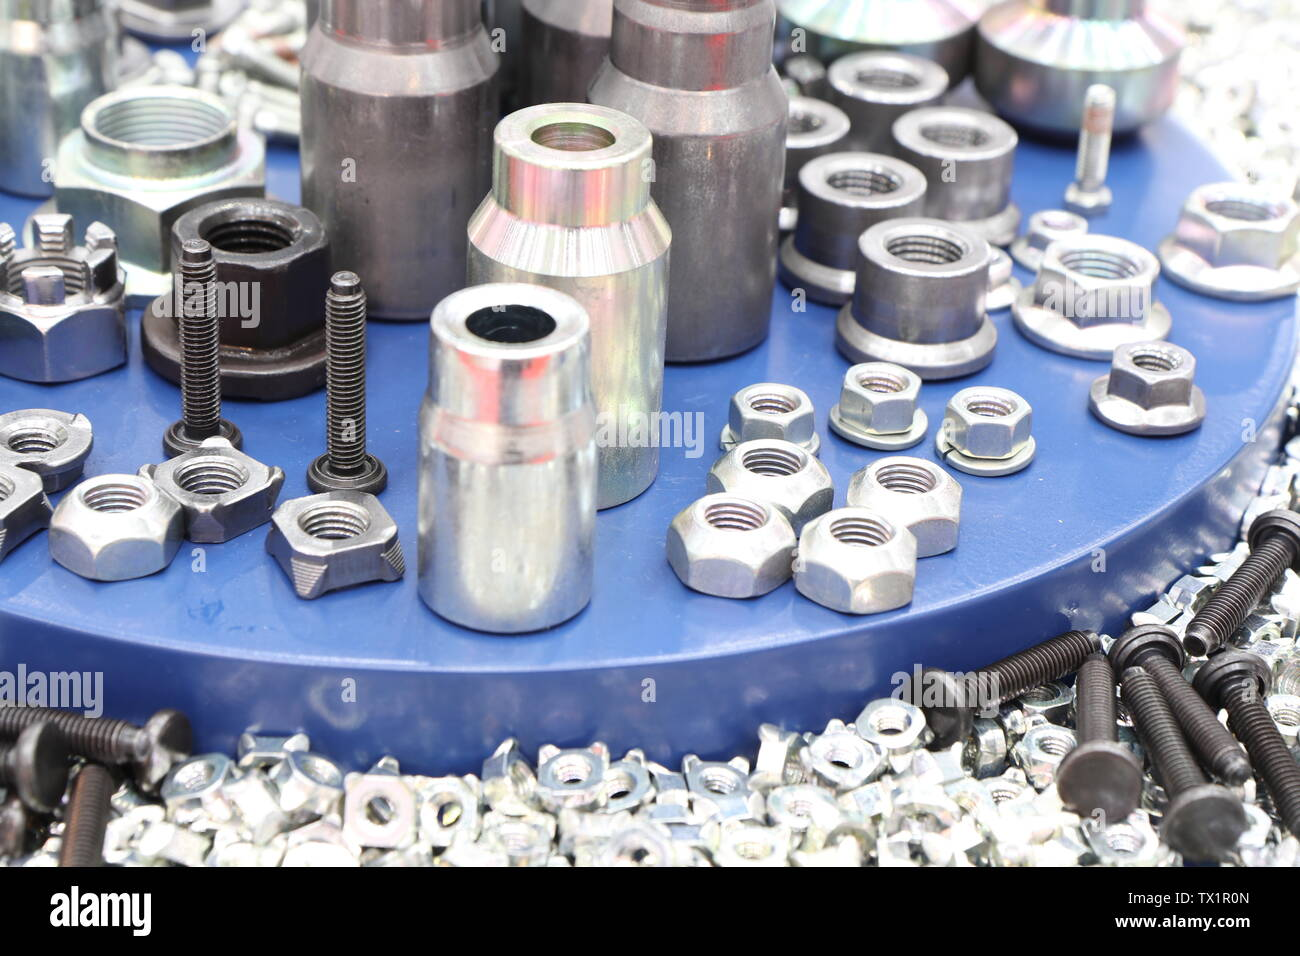 small bolts and nuts by manufacturing process ; tapping - Stock Image